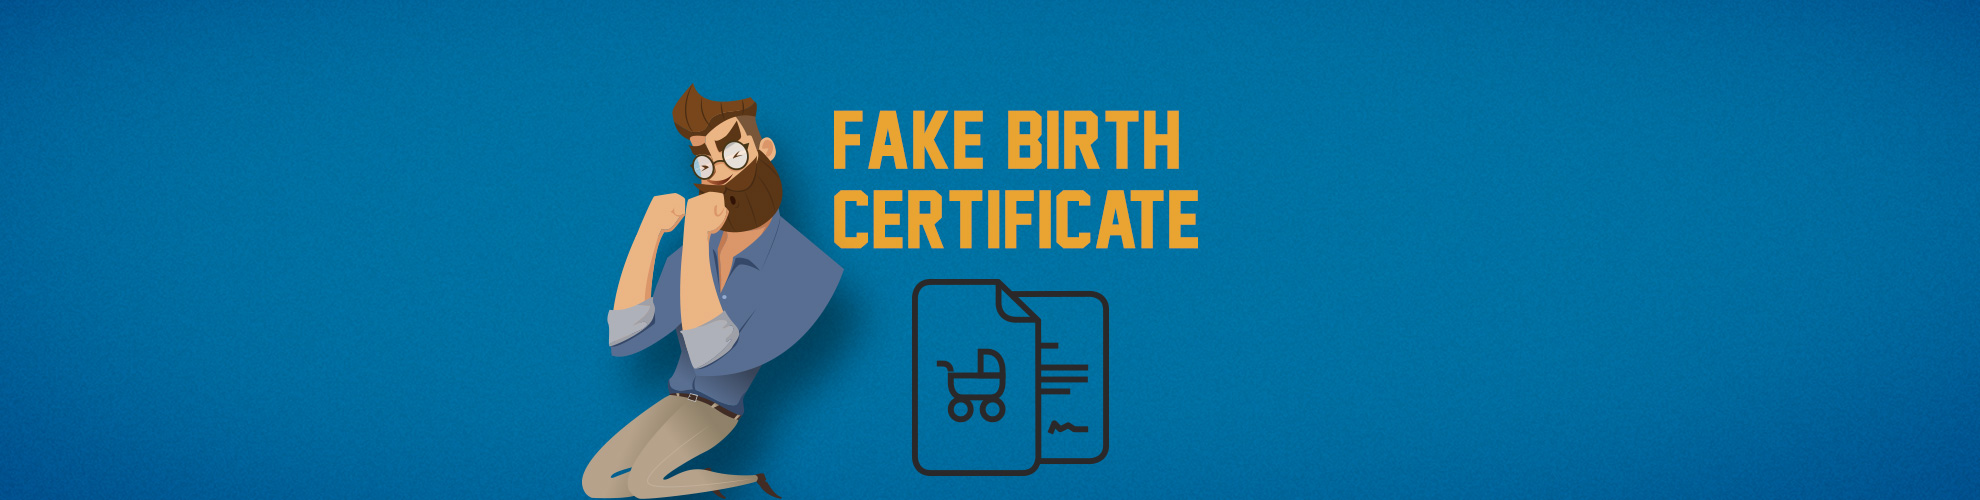 Buy fake birth certificates online forged novelty birth fake birth certificate aiddatafo Image collections